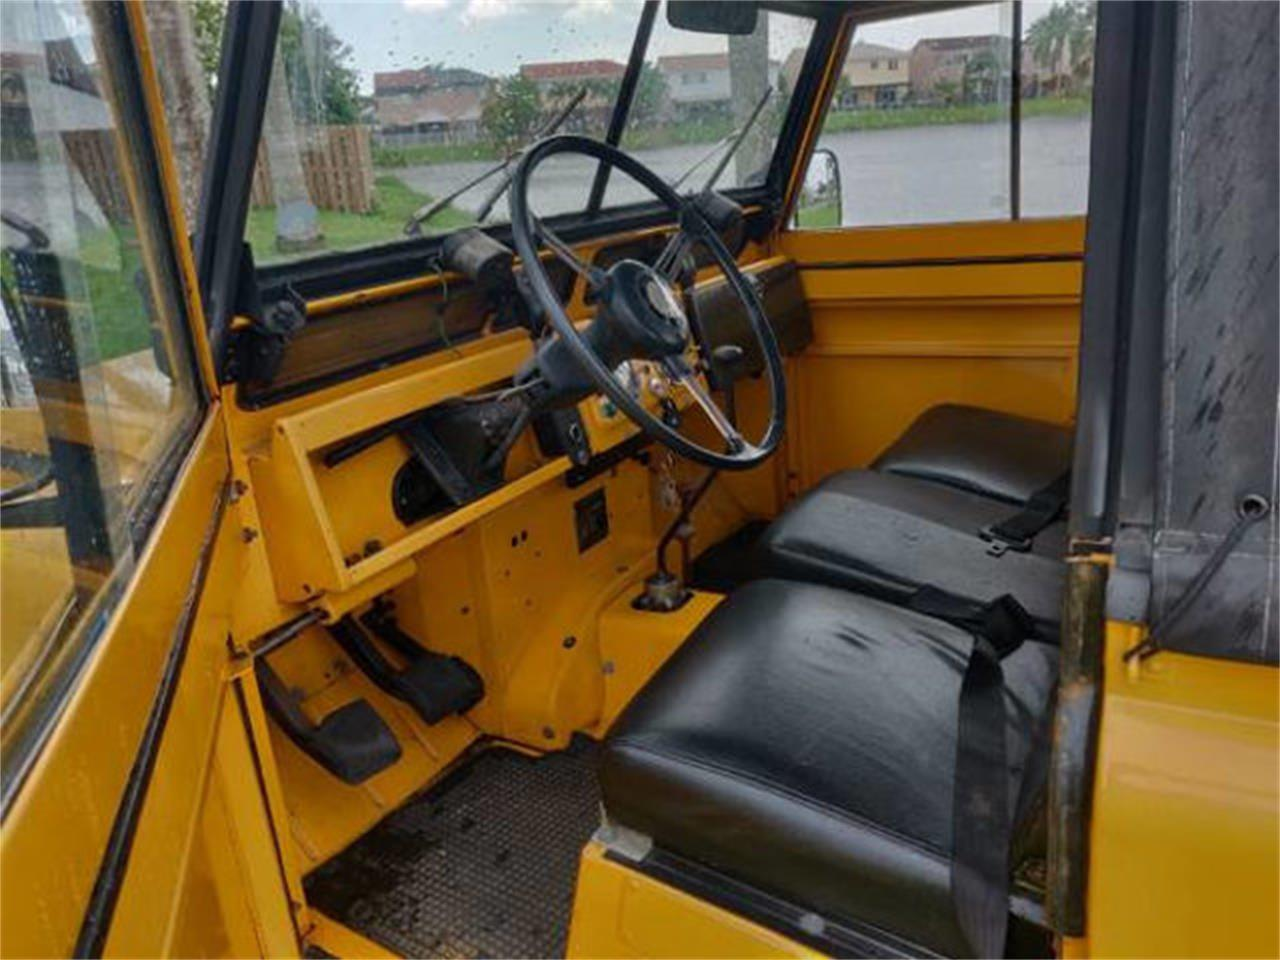 1969 Land Rover Defender (CC-1255785) for sale in Long Island, New York